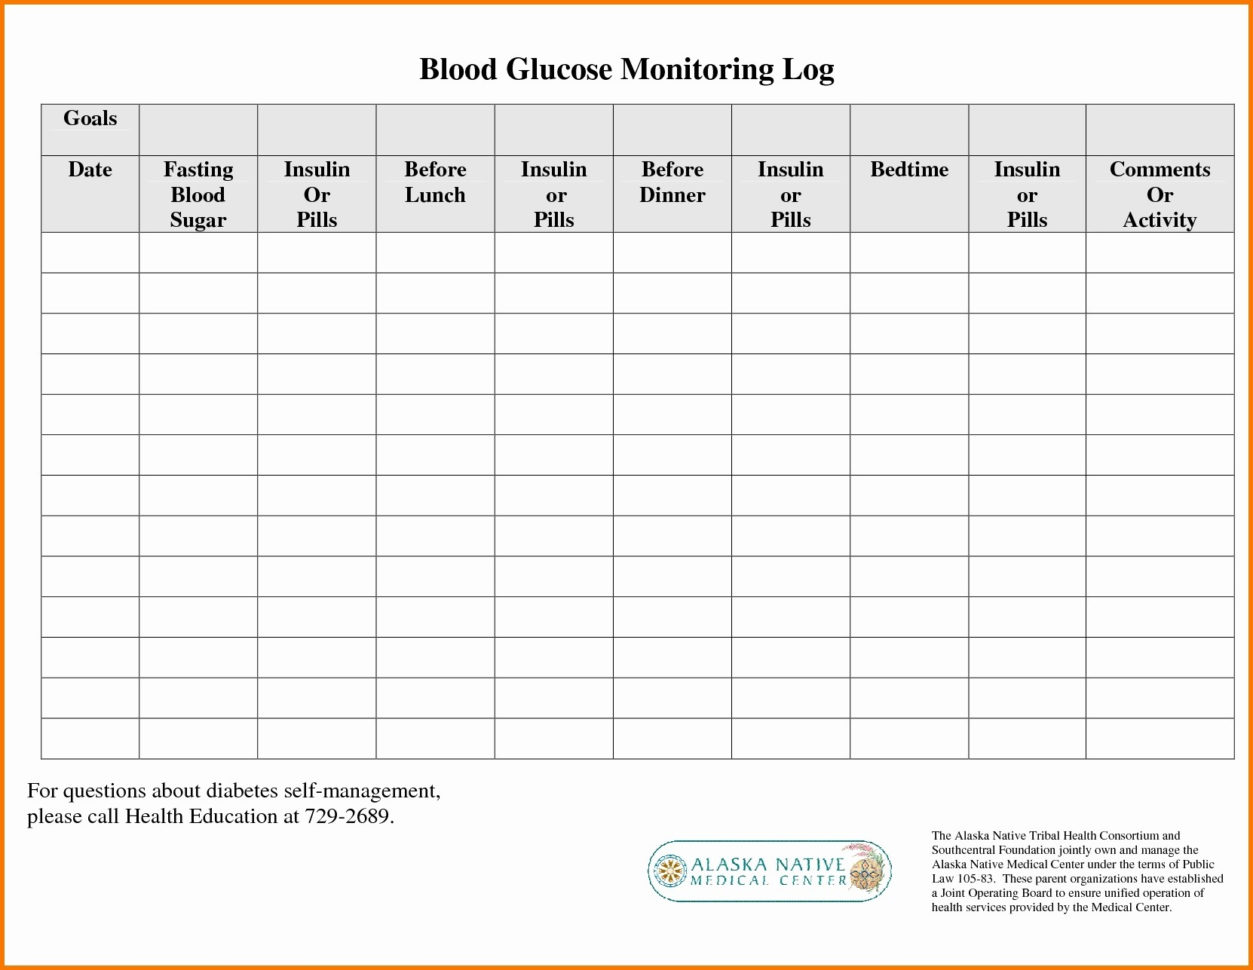 diabetes blood glucose diary spreadsheet diabetes glucose log spreadsheet  Diabetes Glucose Log Spreadsheet For Printable Blood Sugar Chart Template Unique Printable Blood Sugar Diabetes Glucose Log Spreadsheet Printable Spreadshee